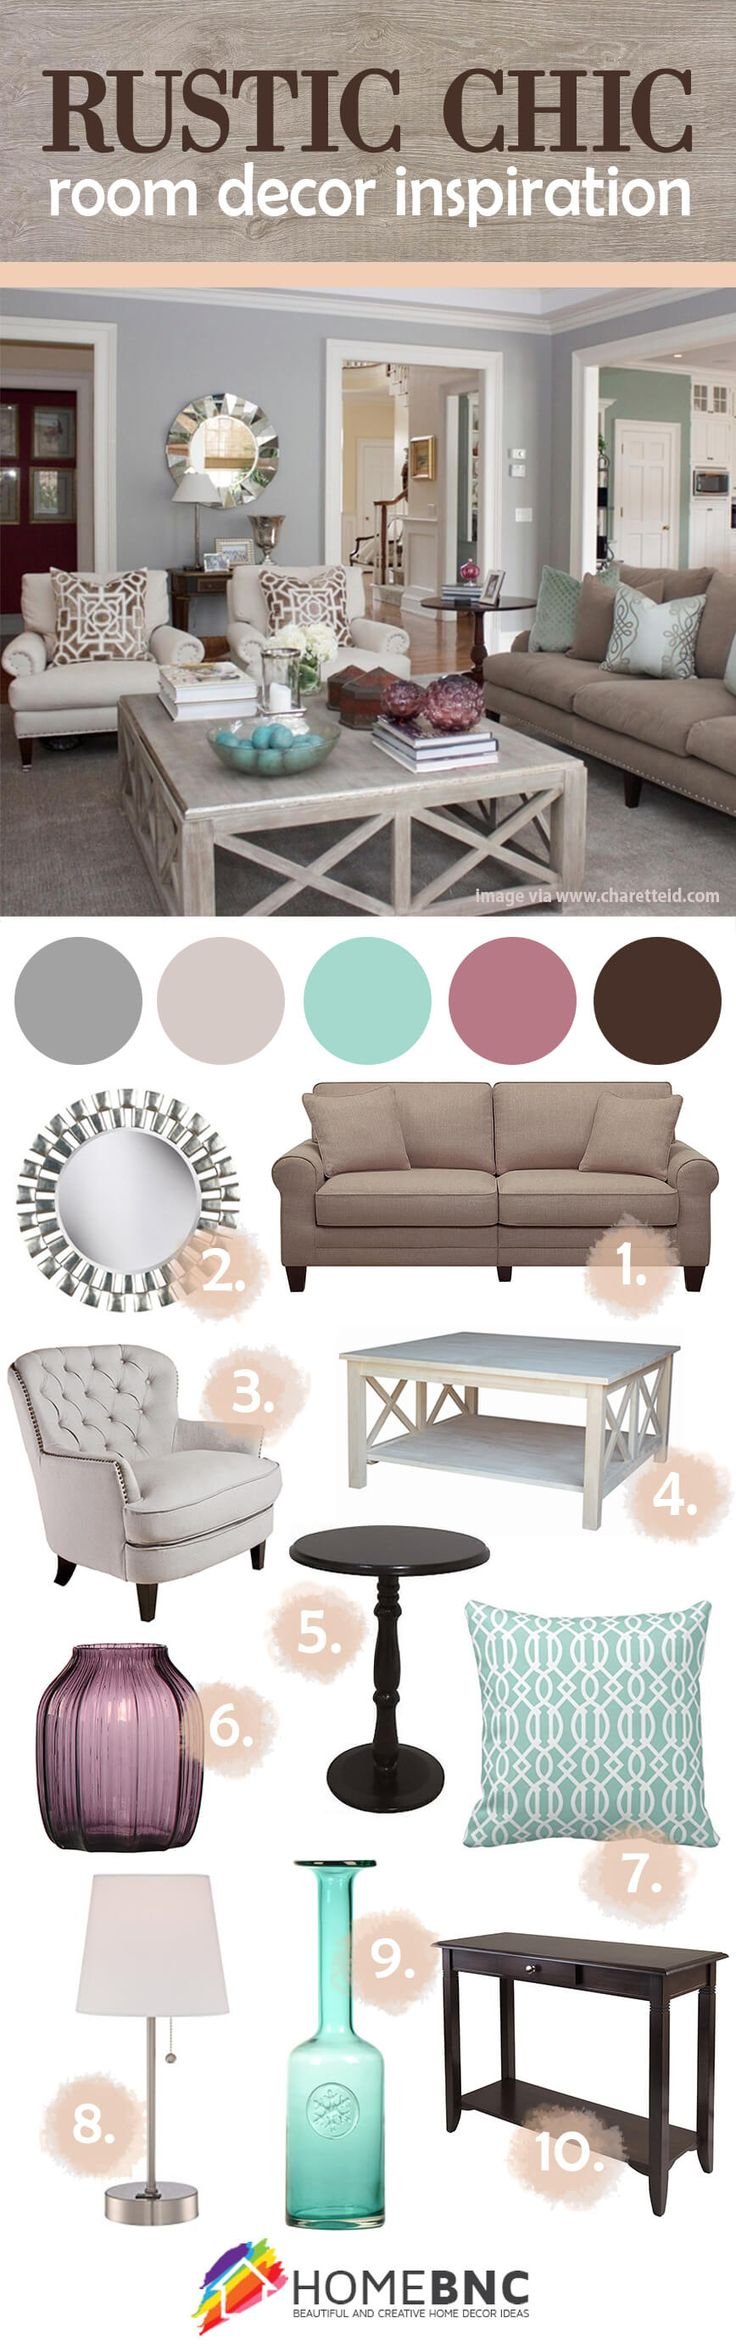 Best 25 family room colors ideas only on pinterest for Colorful living room ideas pinterest